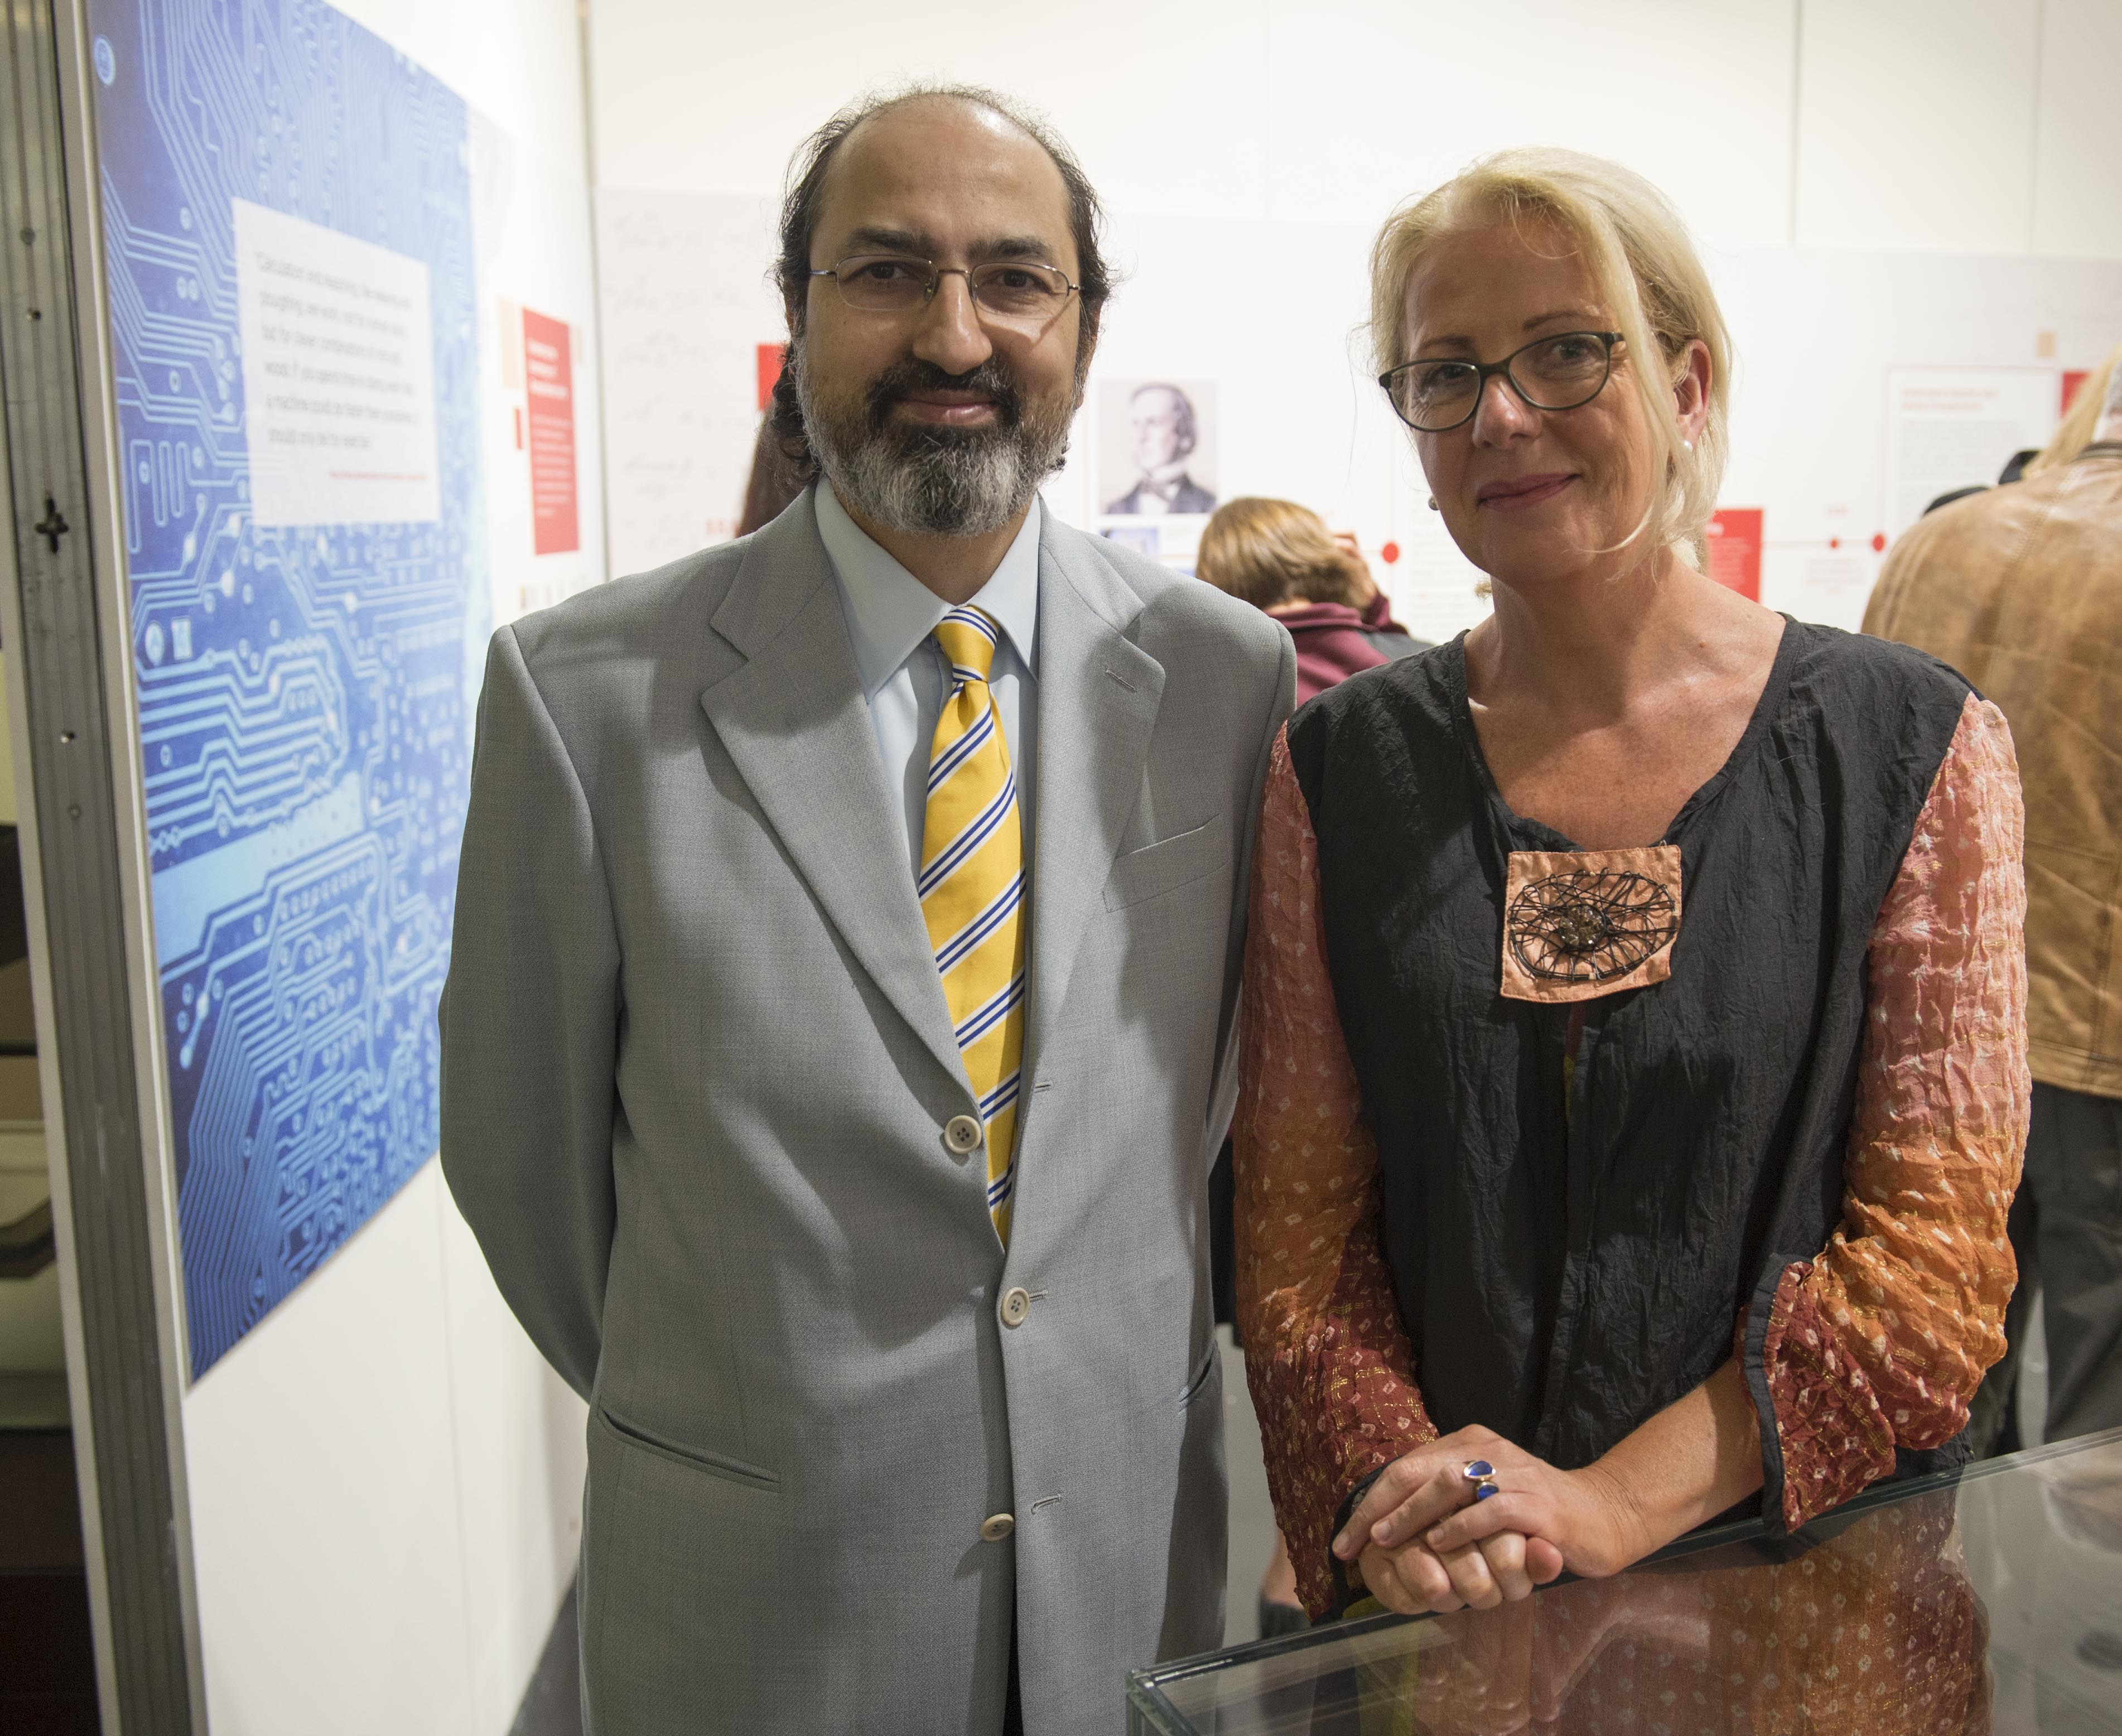 Nabeel Riza (left)  of UCC School of Engineering and Virginia Teehan, Dir. UCC Cultural Programmes at the opening of UCC Library's exhibition, Life and Legacy of George Boole 1815 -2015.